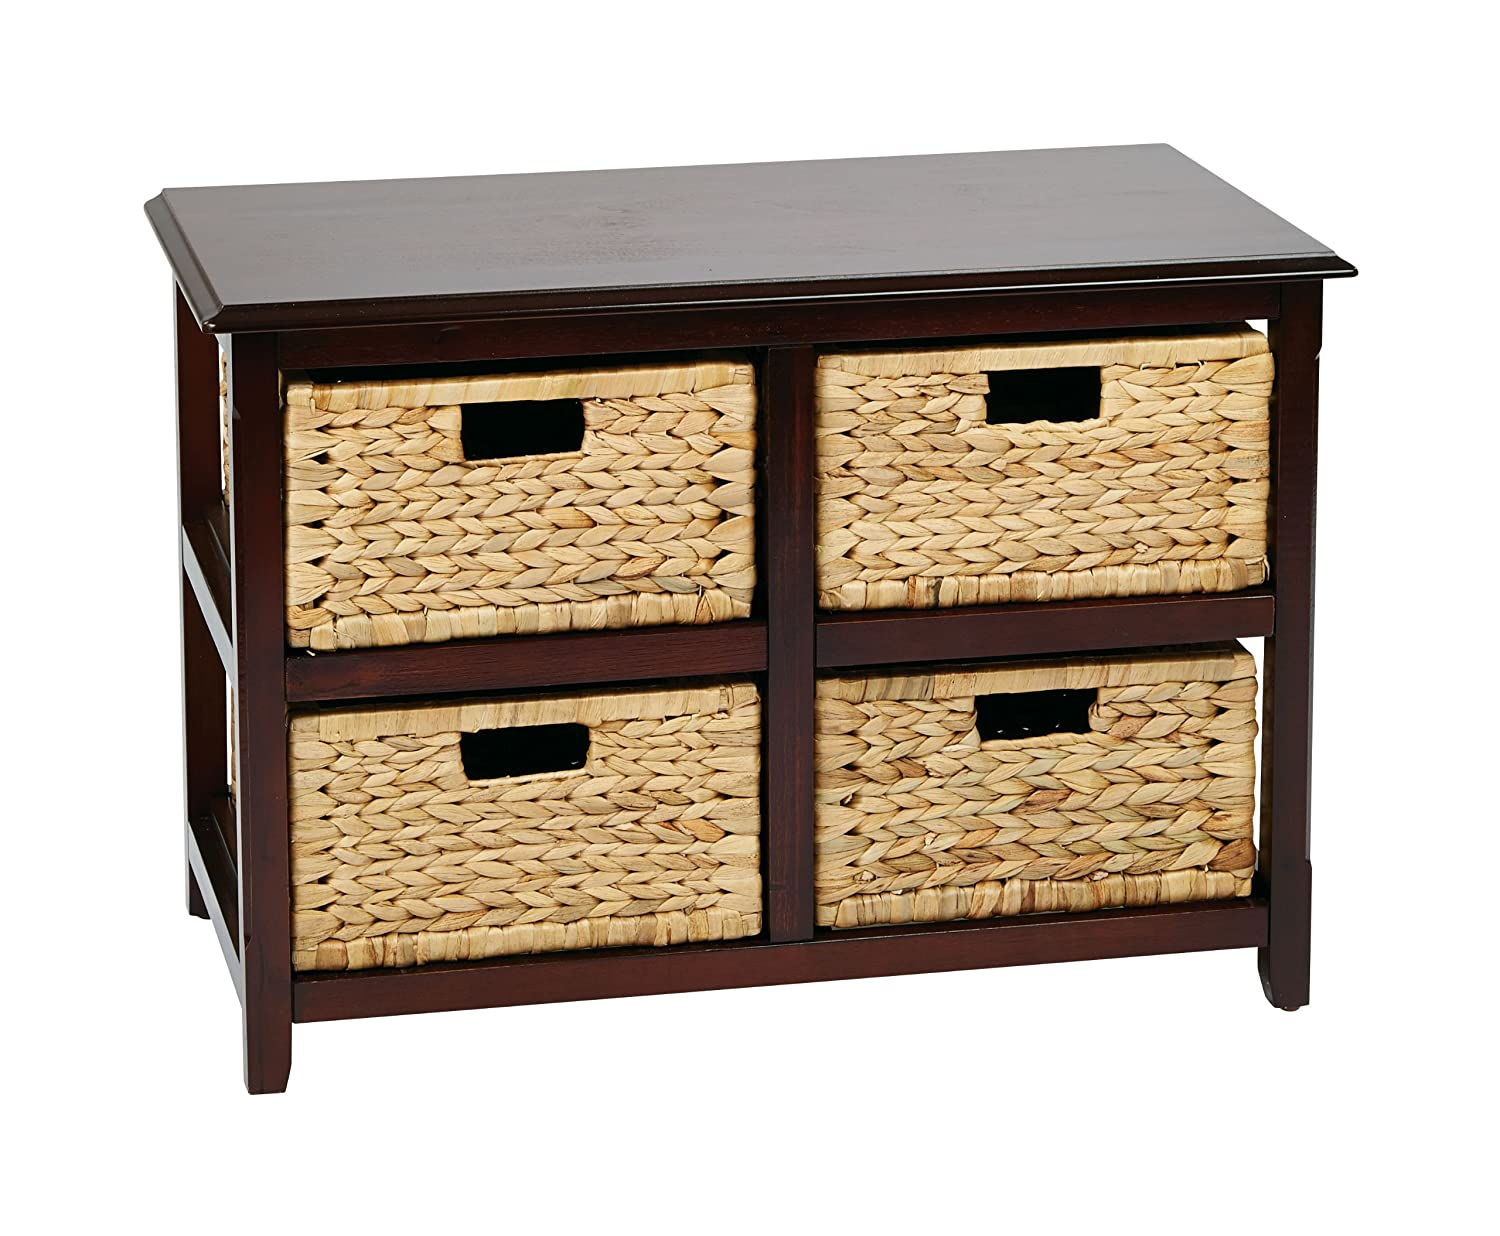 Beau Amazon.com: Office Star Seabrook 2 Tier, 4 Drawer Storage Unit With Natural  Baskets, Espresso Finish: Kitchen U0026 Dining